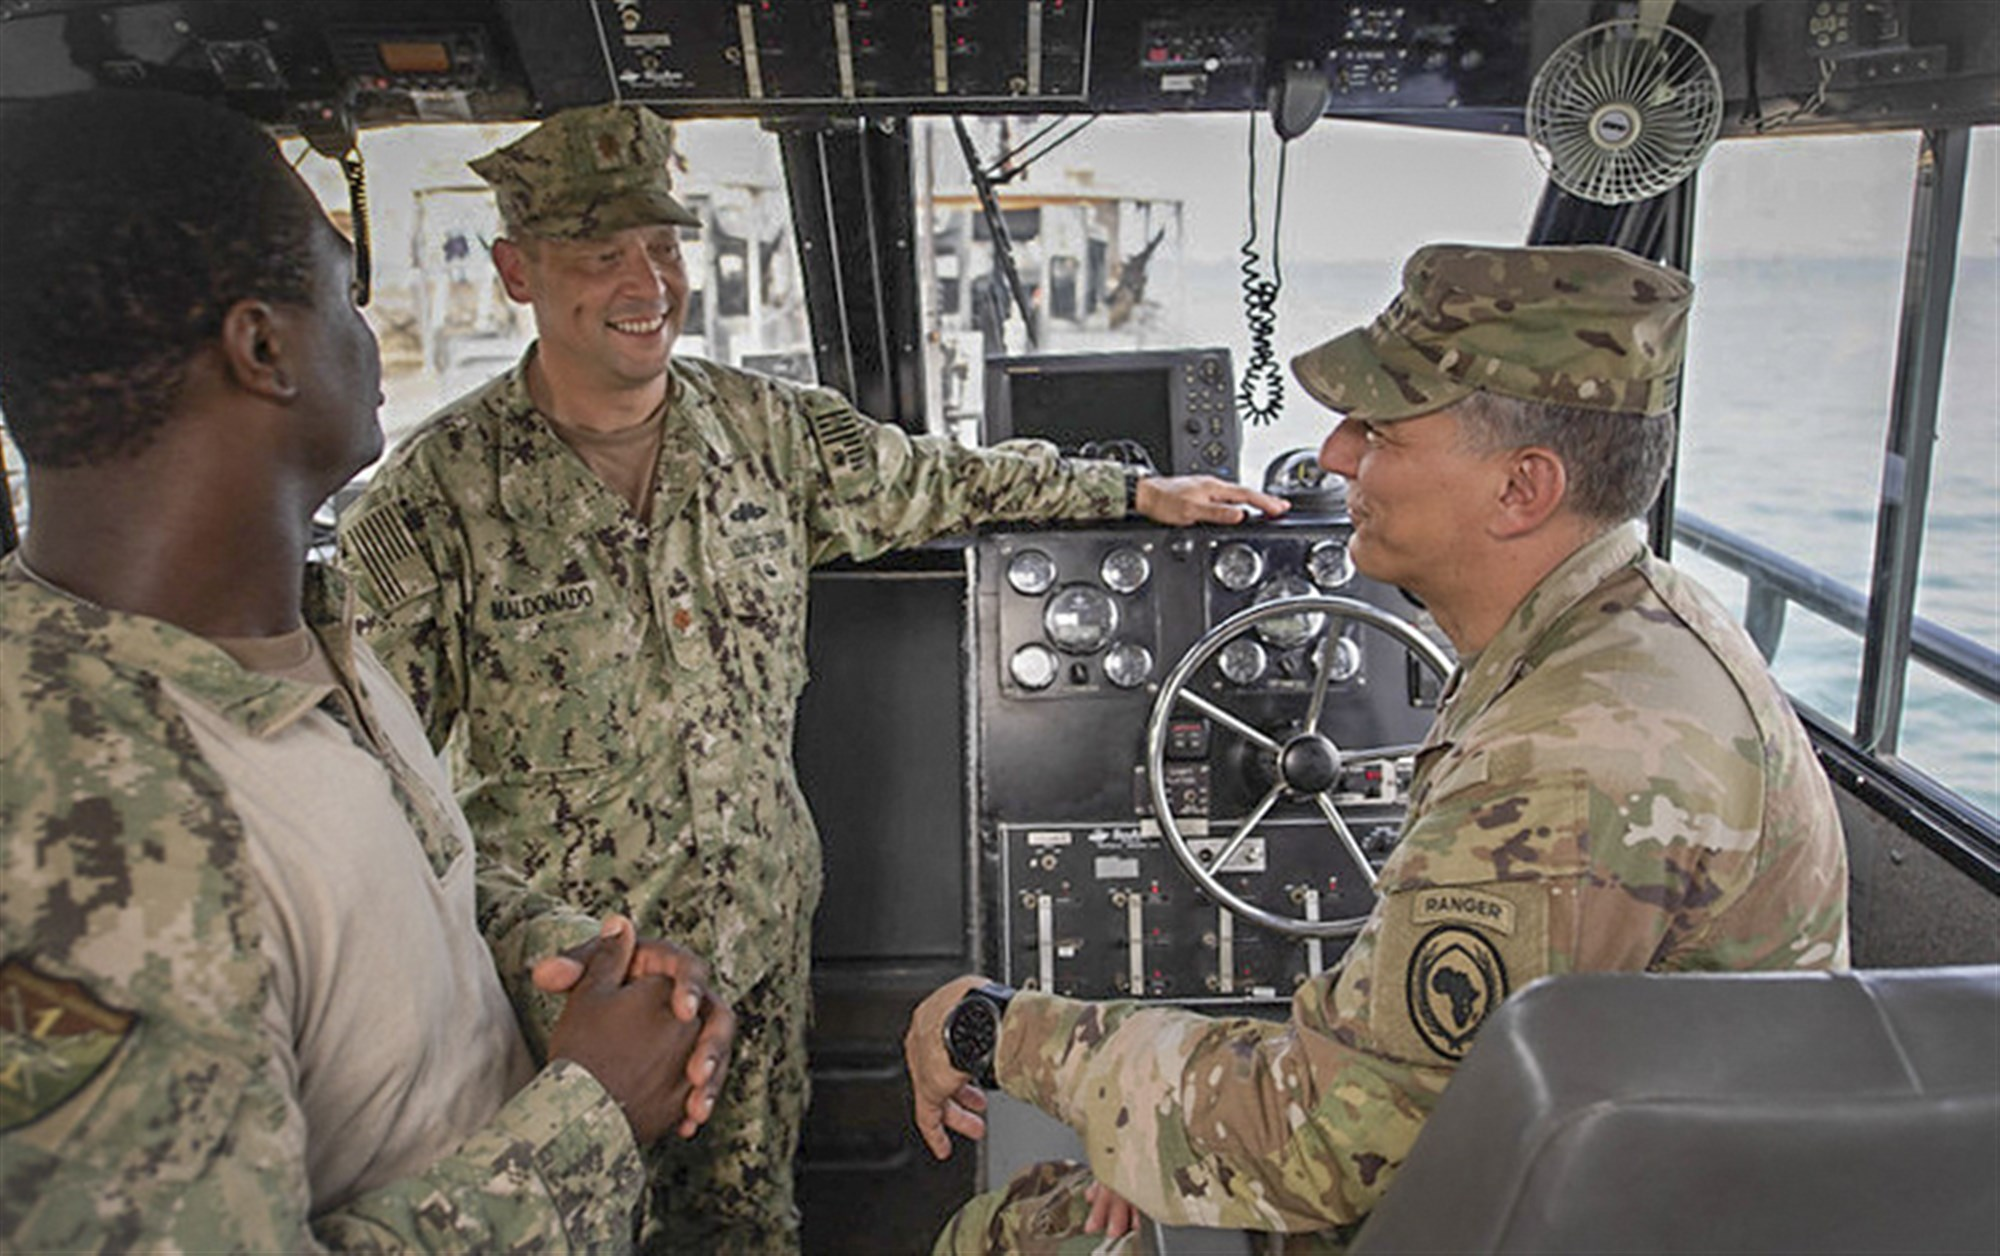 U.S. Army Gen. Stephen J. Townsend, commander, U.S. Africa Command, speaks with U.S. Coast Guard Lt. Cmdr. Jose Maldonado, middle, aboard a 34-foot Dauntless Sea-Ark during a visit to the Djiboutian navy base during exercise Cutlass Express 2019.2 and International Maritime Exercise 2019 in Djibouti, Djibouti, Nov. 4. Cutlass Express is designed to improve regional cooperation, maritime domain awareness and information sharing practices to increase capabilities between the U.S., East African and Western Indian Ocean nations to counter illicit maritime activity. (U.S. Navy photo by Mass Communication Specialist Seaman Andrea Rumple)